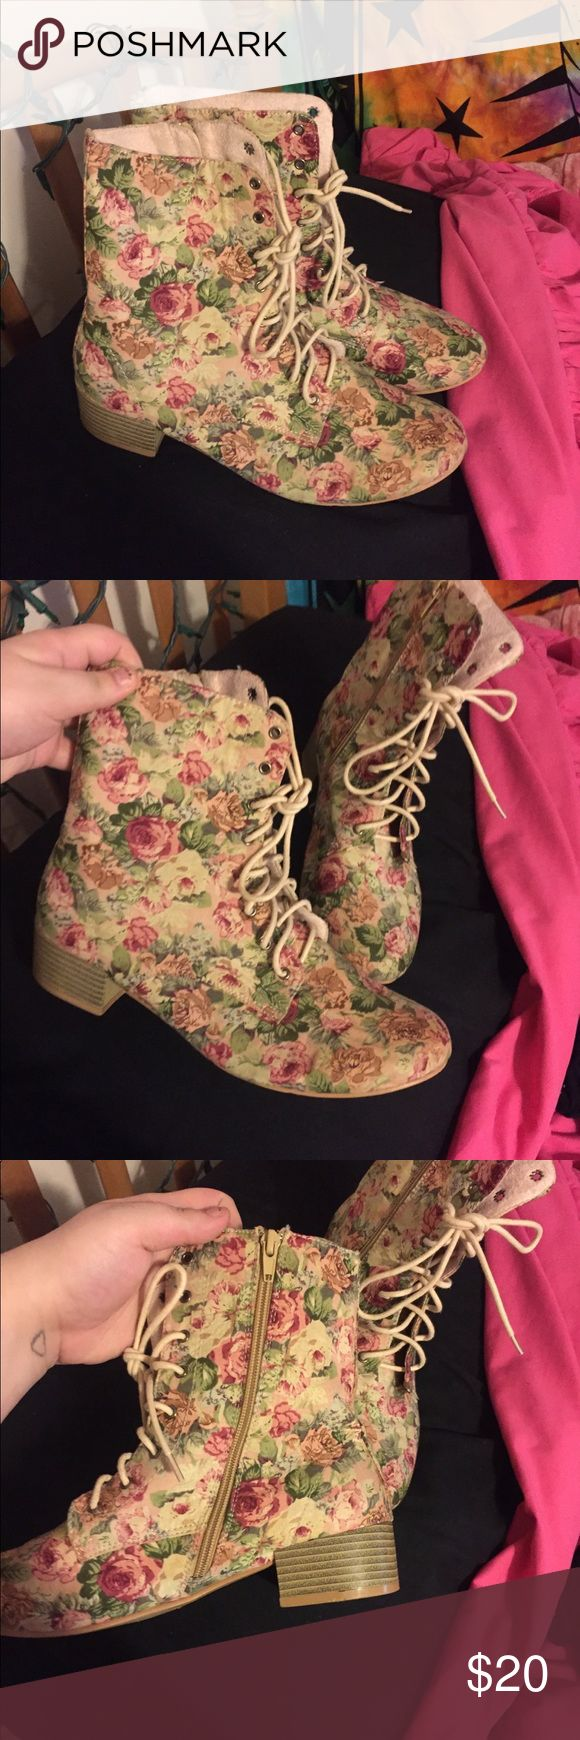 Lace up Floral Combat boots Lace up floral combat boots with zipper on inside, NEVER WORN, size 9 but can fit a size 10 Windsor Shoes Combat & Moto Boots